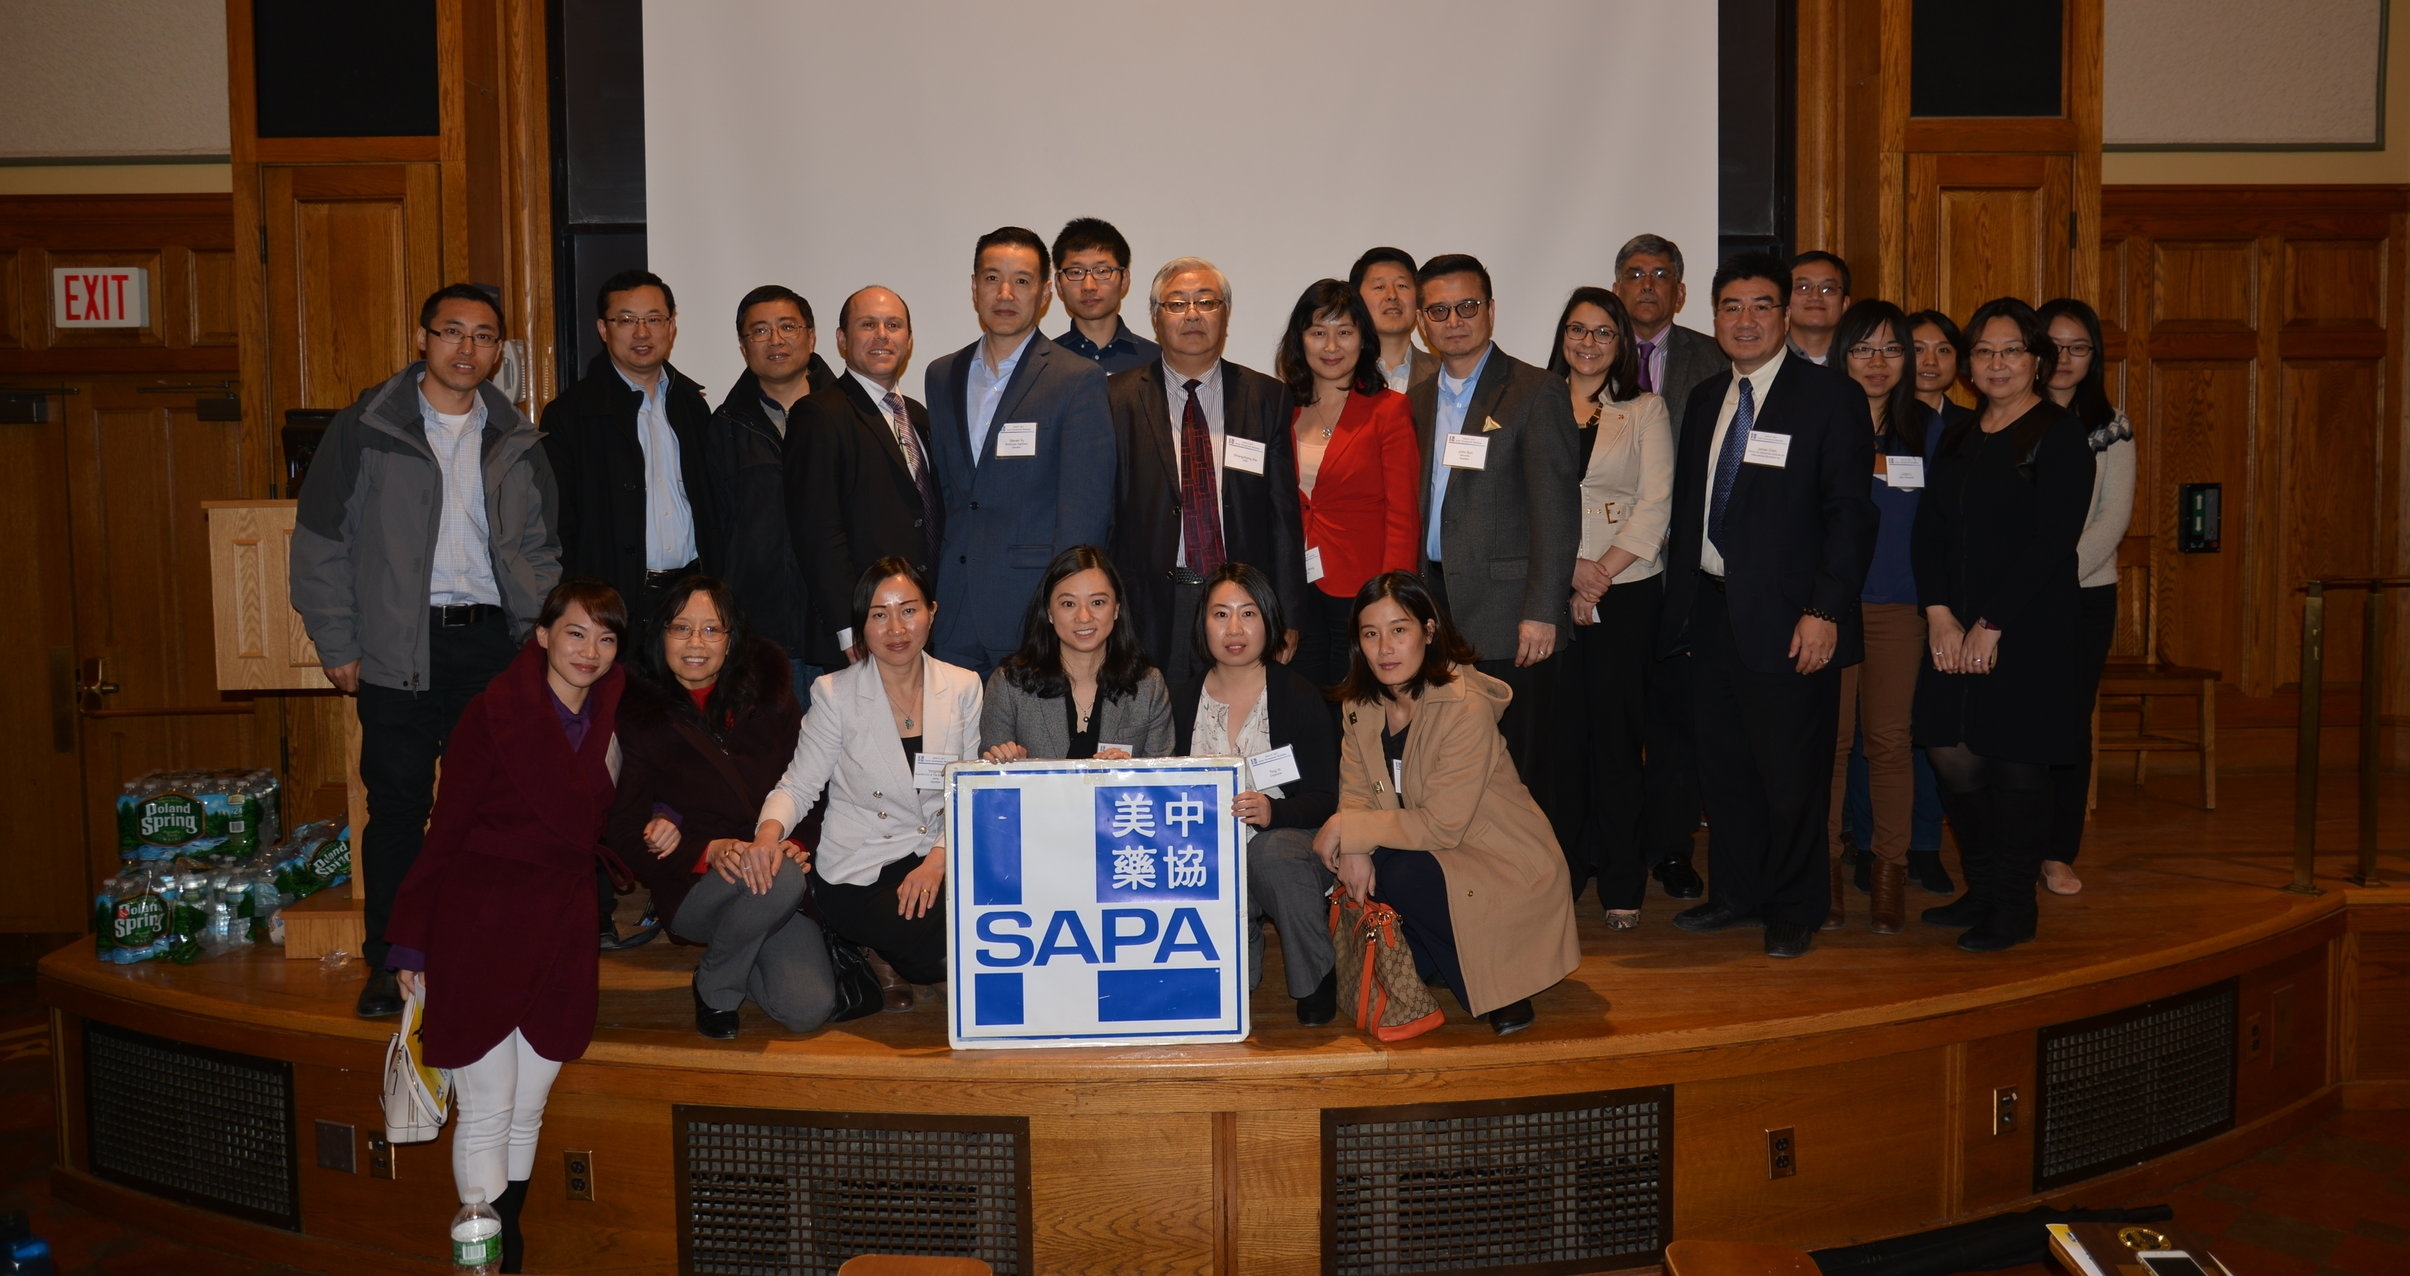 SAPA-CT group and UCONN faculty & students